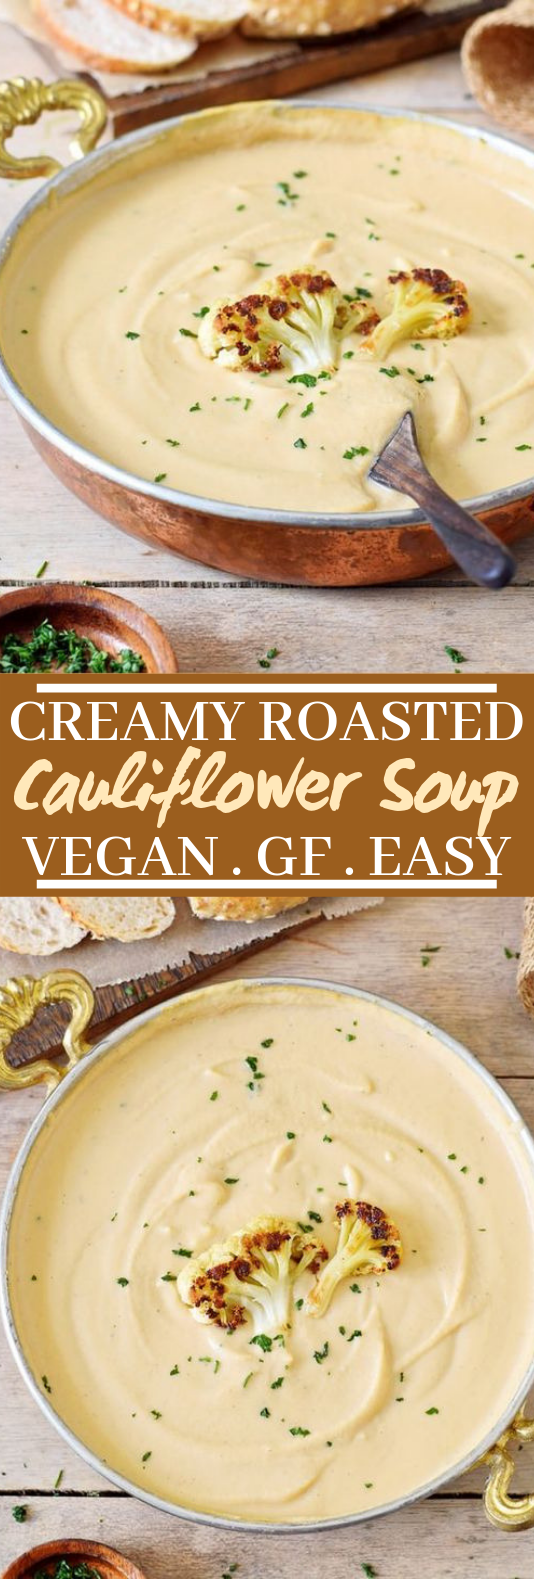 CREAMY ROASTED VEGAN CAULIFLOWER SOUP #soup #vegan